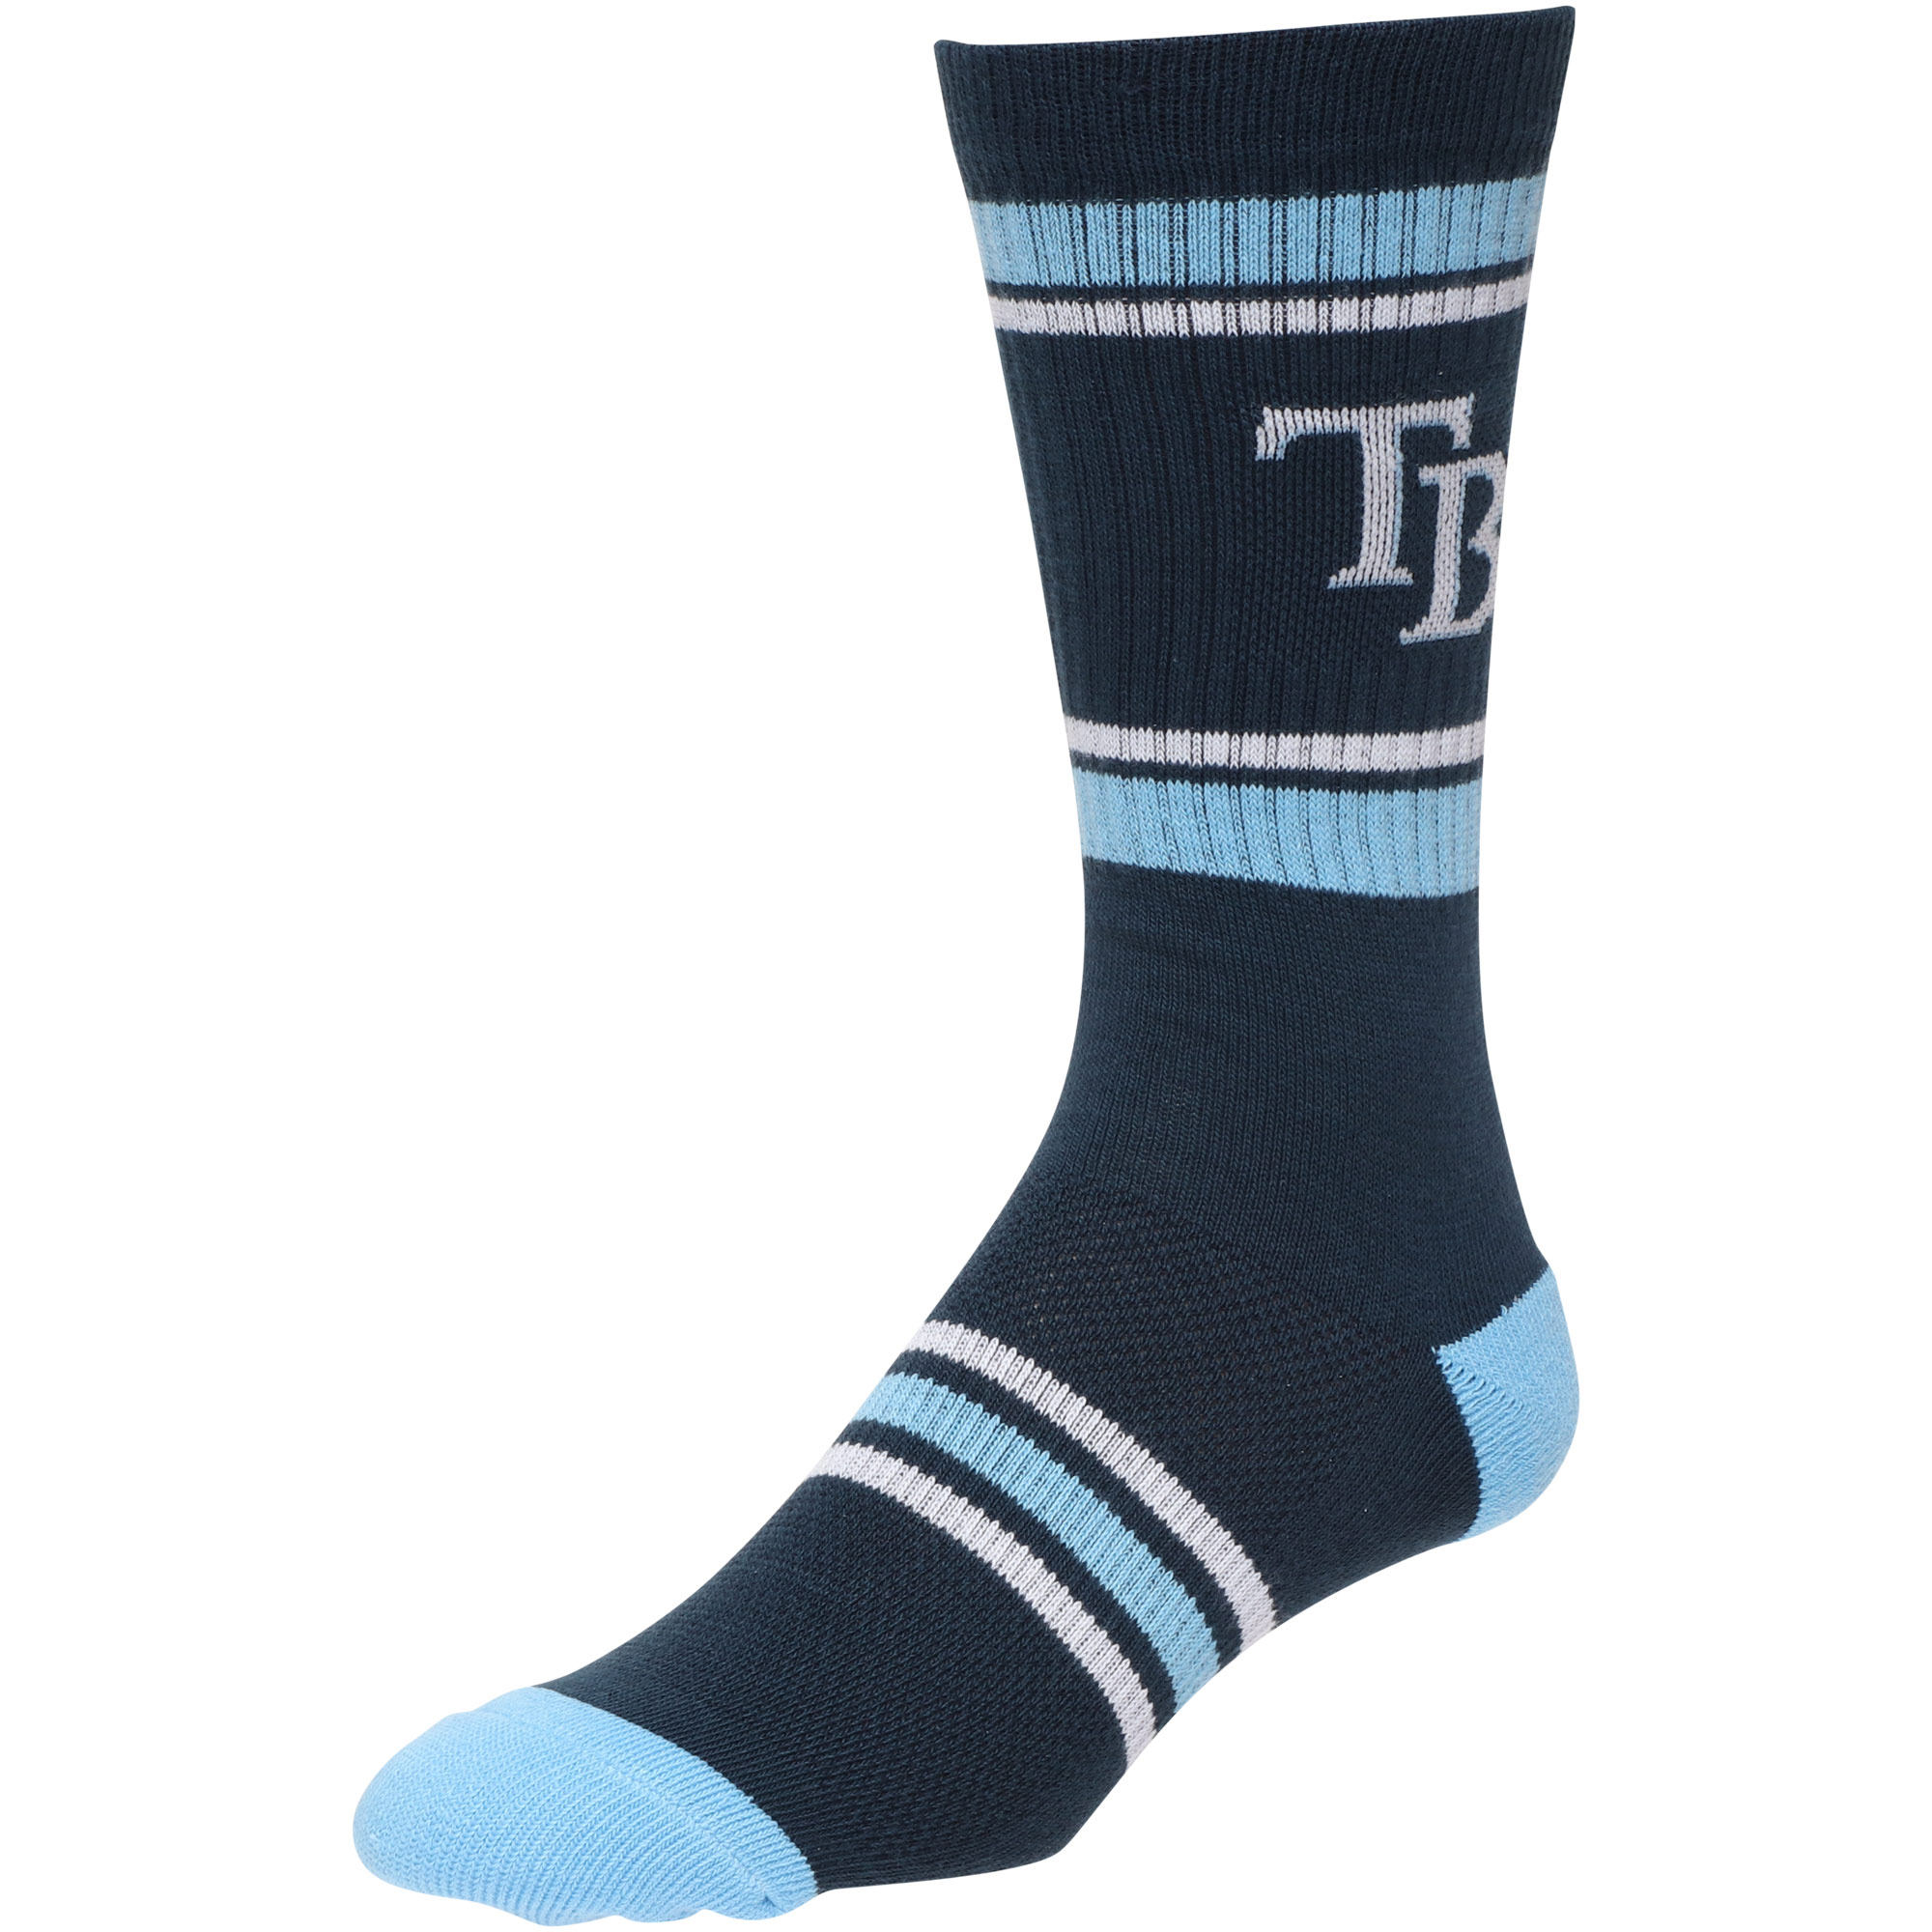 Tampa Bay Rays Stripe Crew Socks - Navy - L